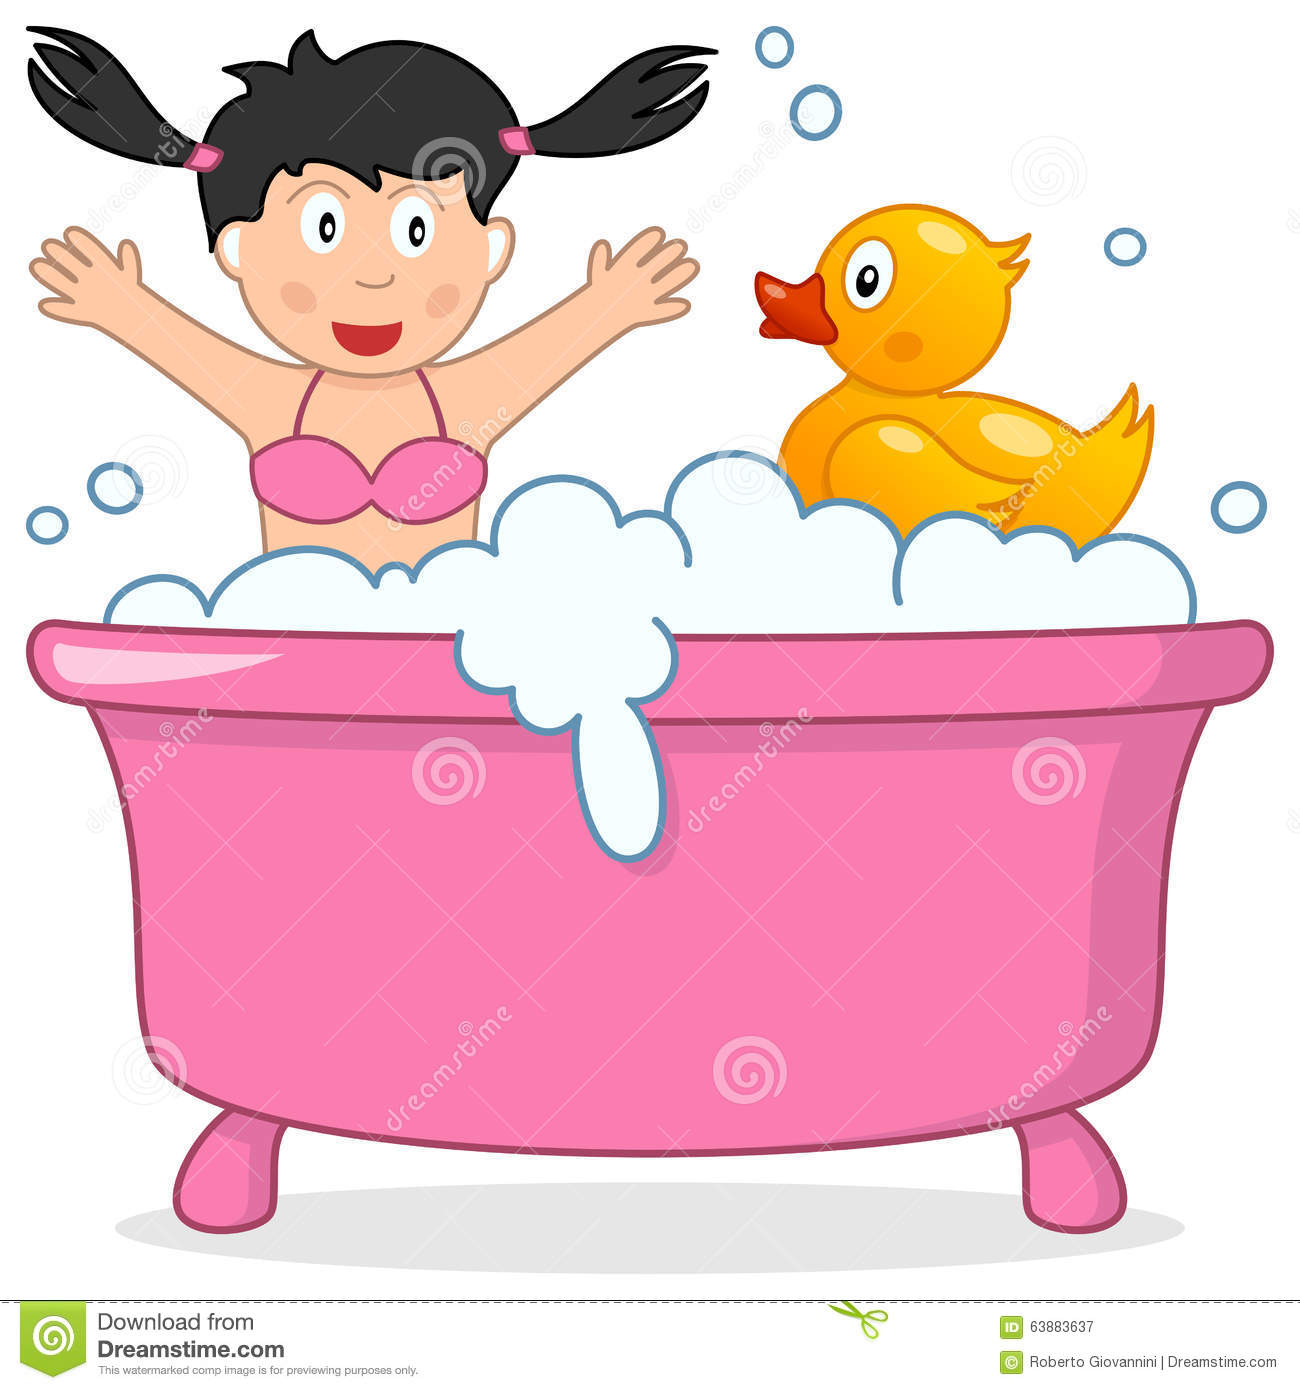 Clipart Of Little Girl Holding Her Rubber Ducky.